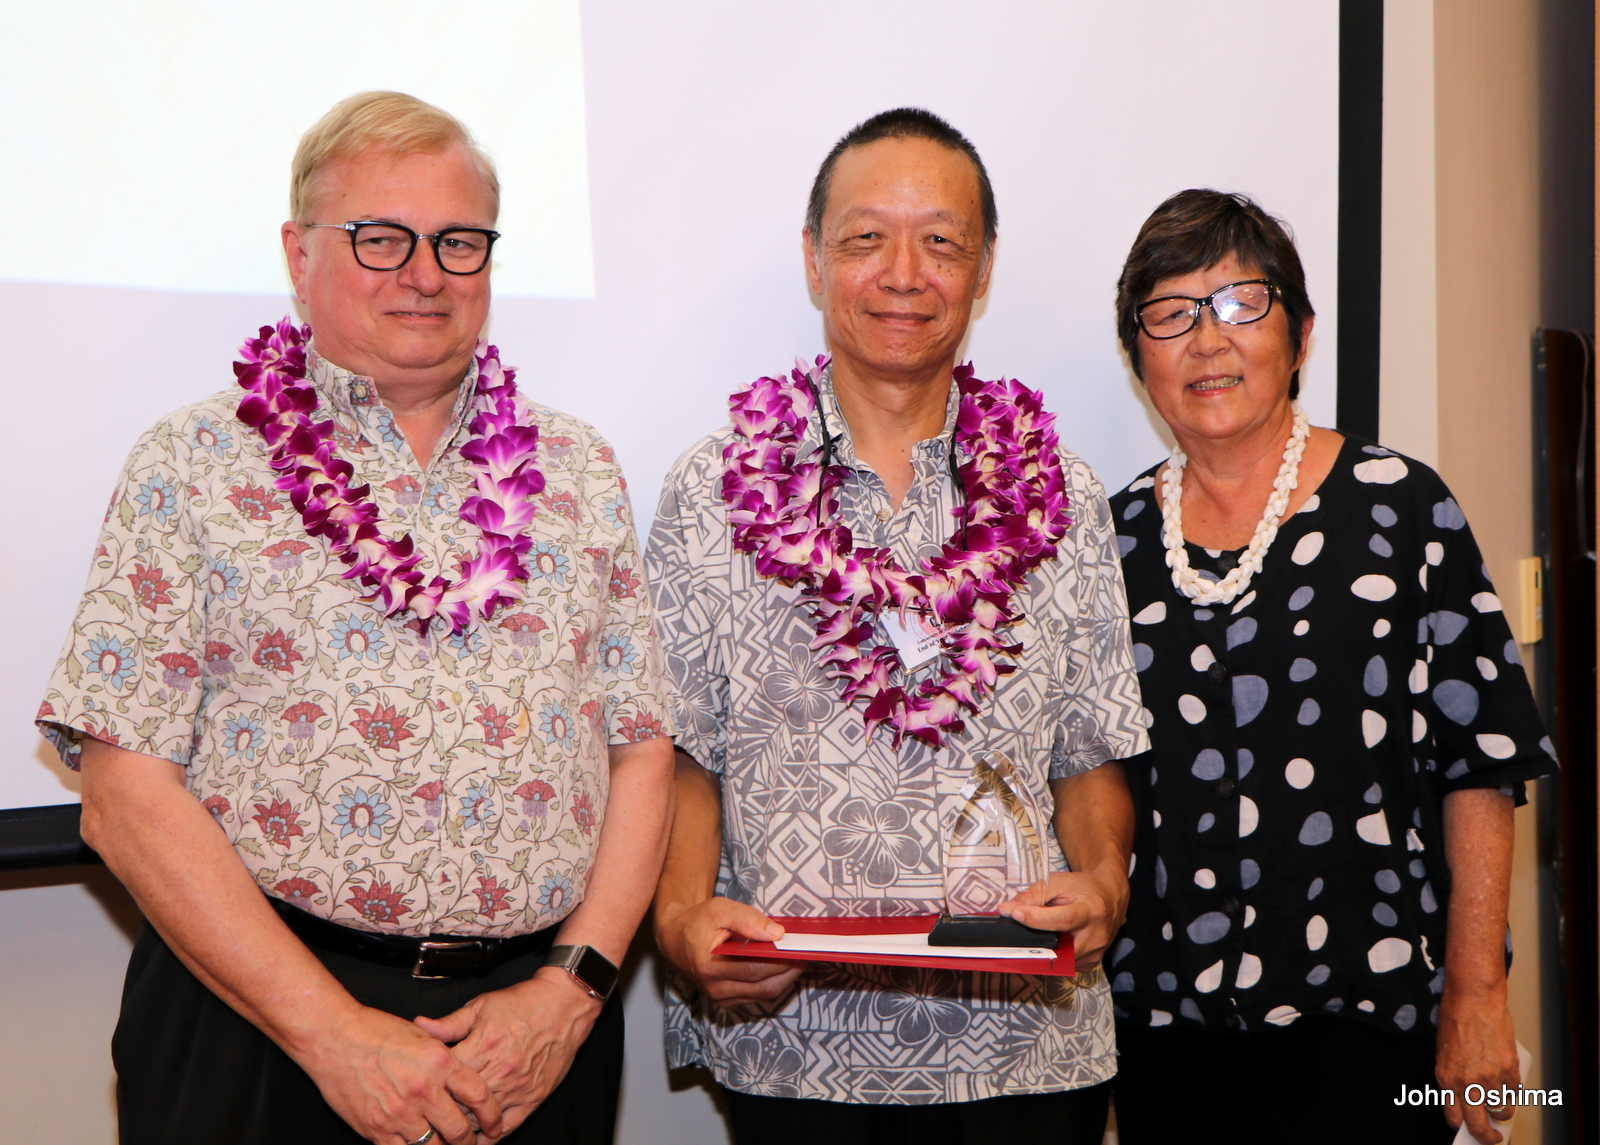 Don Straney, Lo-li Chih, and Vice Chancellor for Administrative Affairs Marcia Sakai. Chancellor and Lo-li have lei.